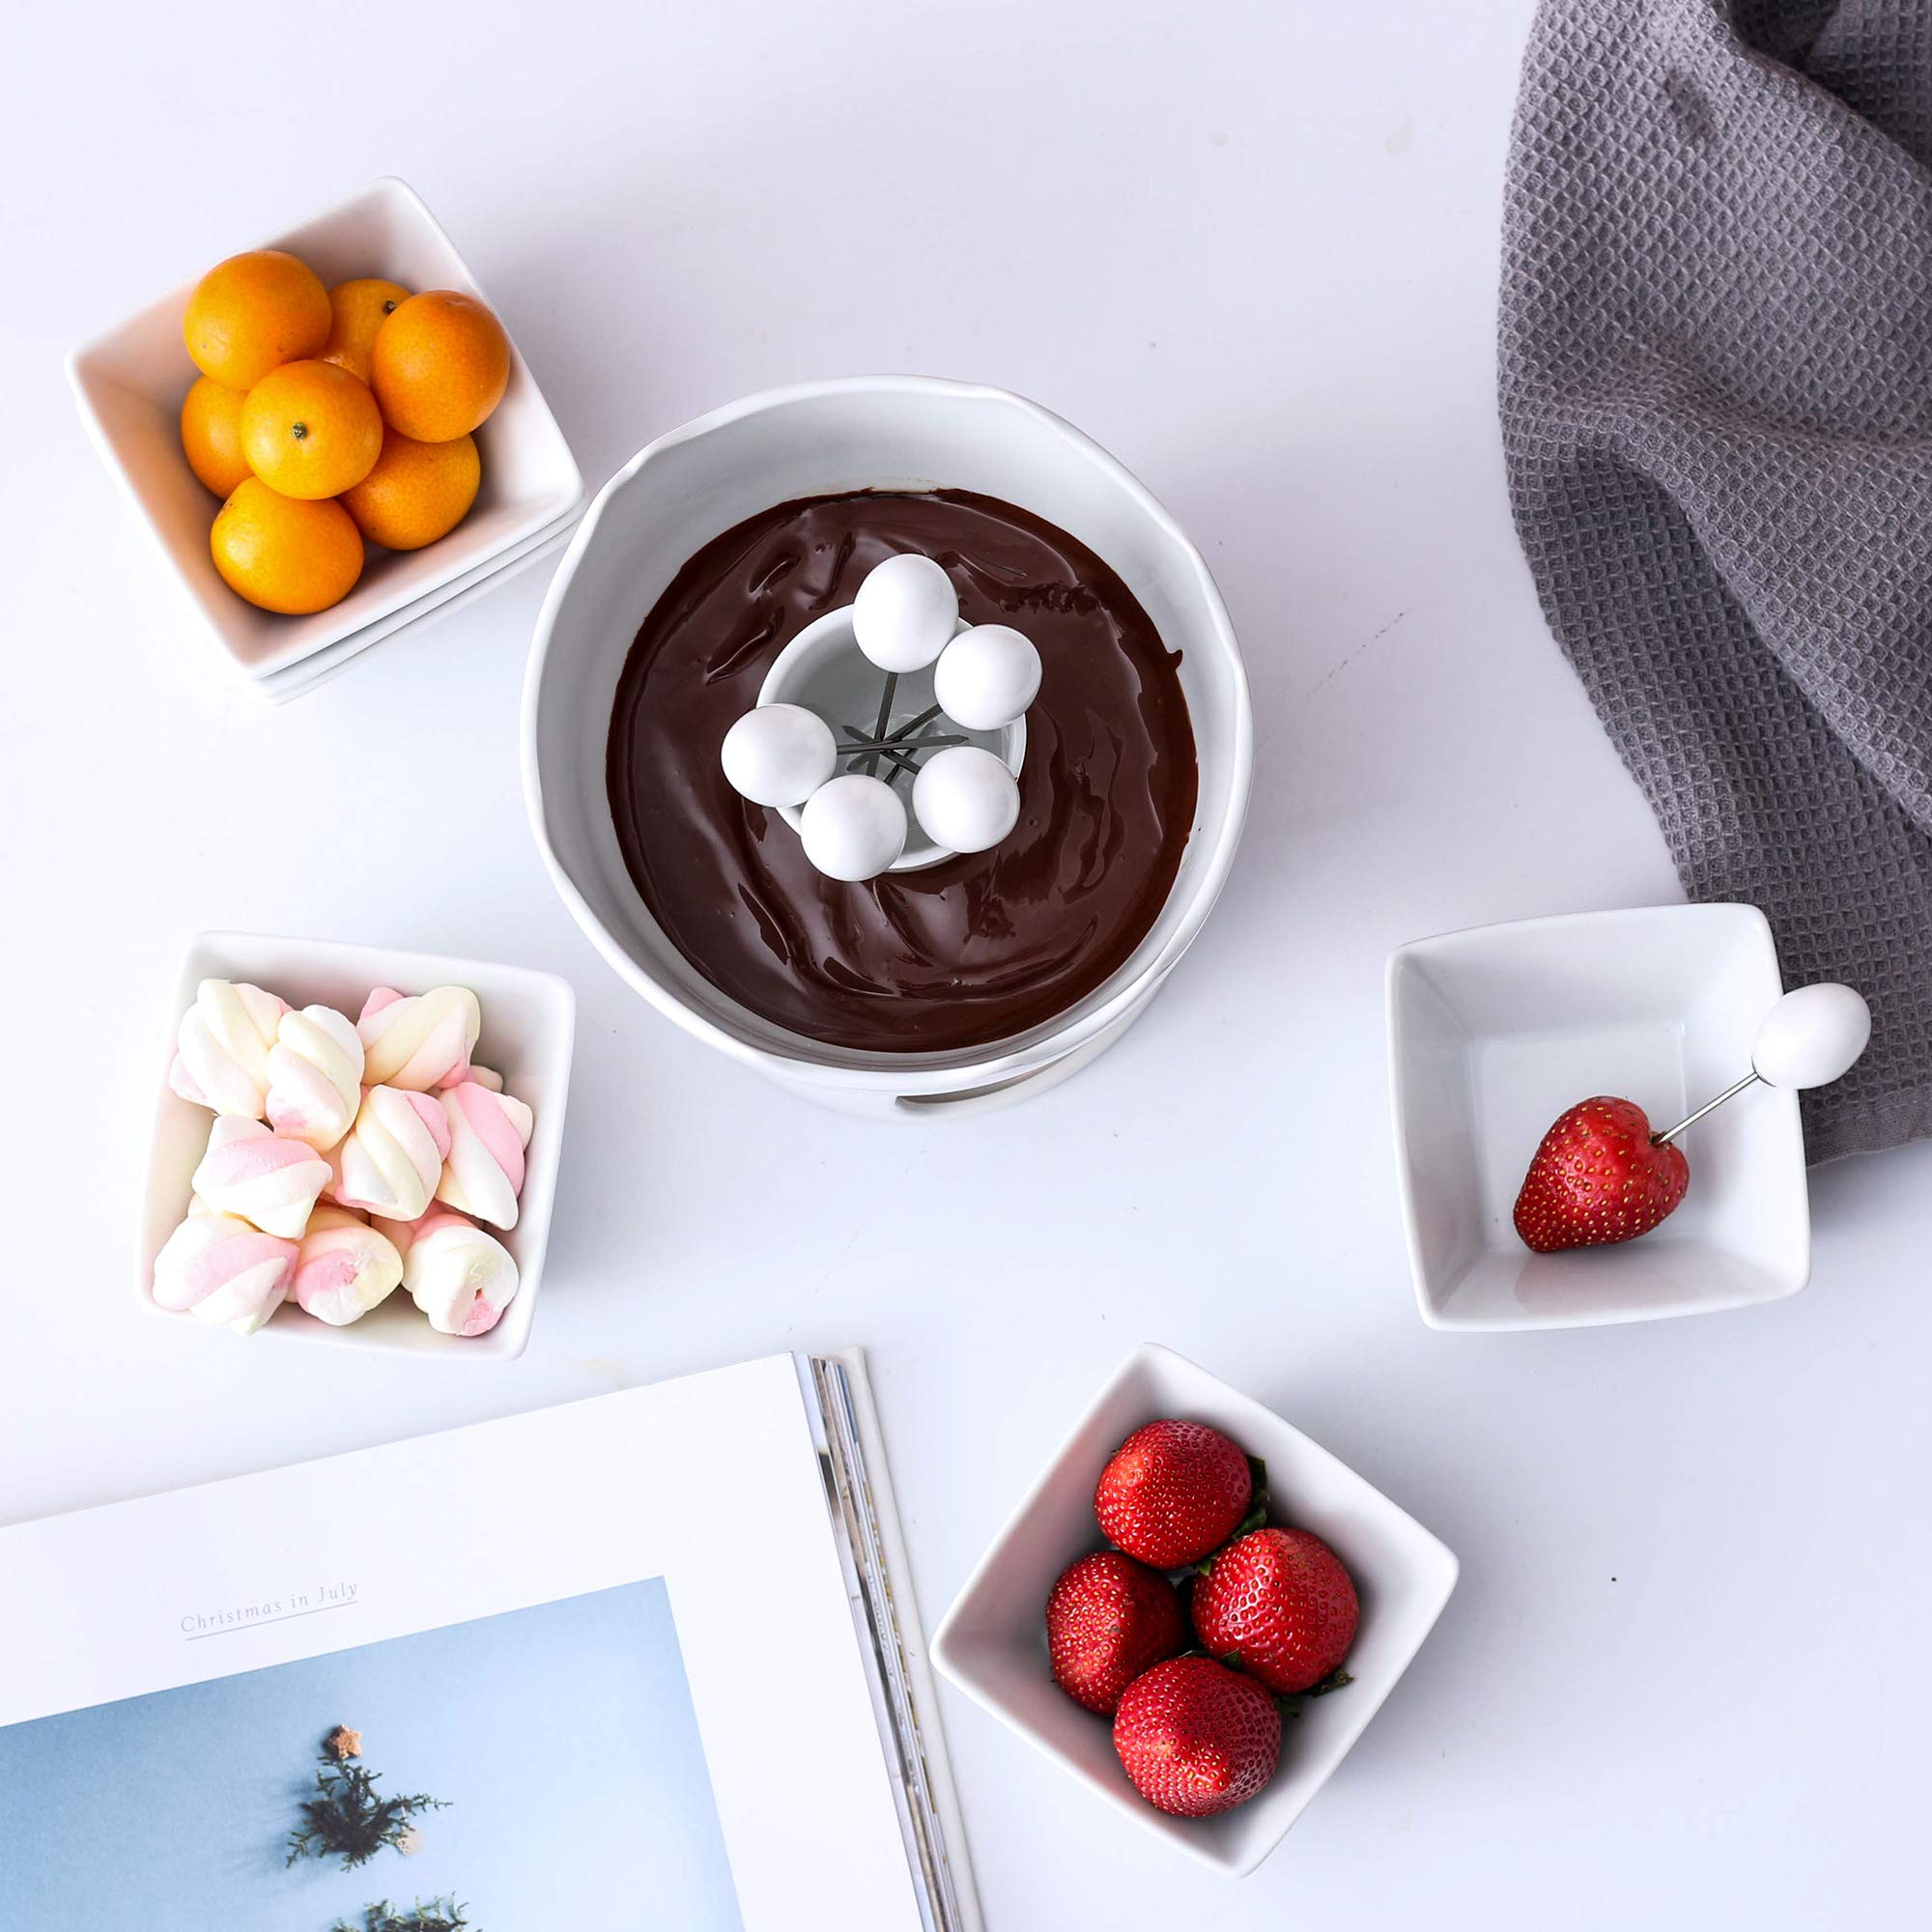 Malacasa Fondue Pot Set Two-layer Porcelain Tealight Chocolate Fondue with Dipping Bowls and Forks for 6, Cheese Fondue or Butter Fondue Set, White by Malacasa (Image #5)